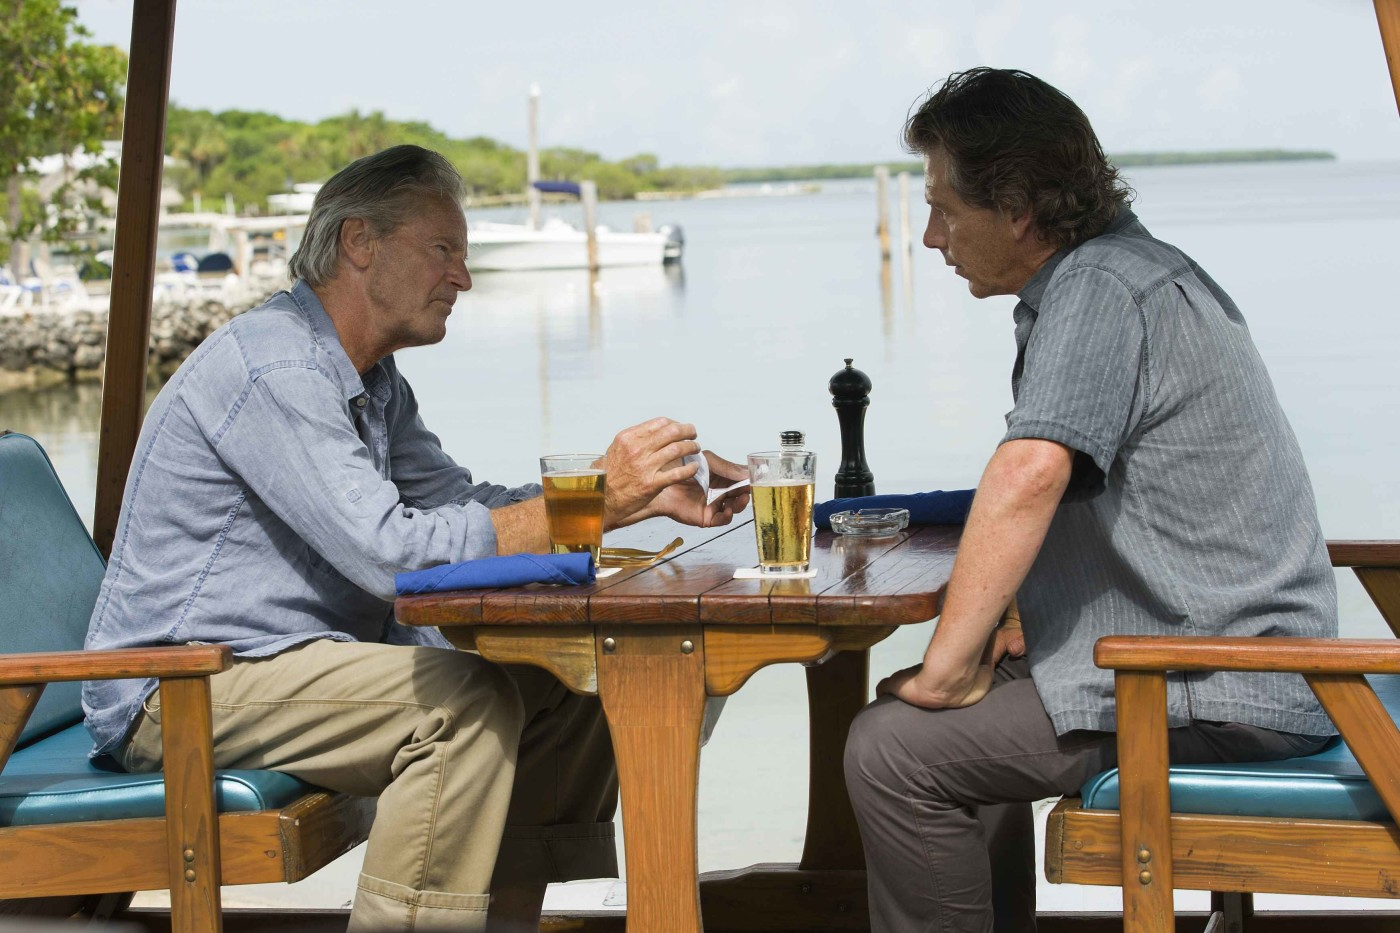 Sam Shepard (Robert Rayburn) and Ben Mendelsohn (Danny Rayburn) in the Netflix Original Series BLOODLINE. Photo Credit: Saeed Adyani © 2014 Netflix, Inc. All Rights Reserved.